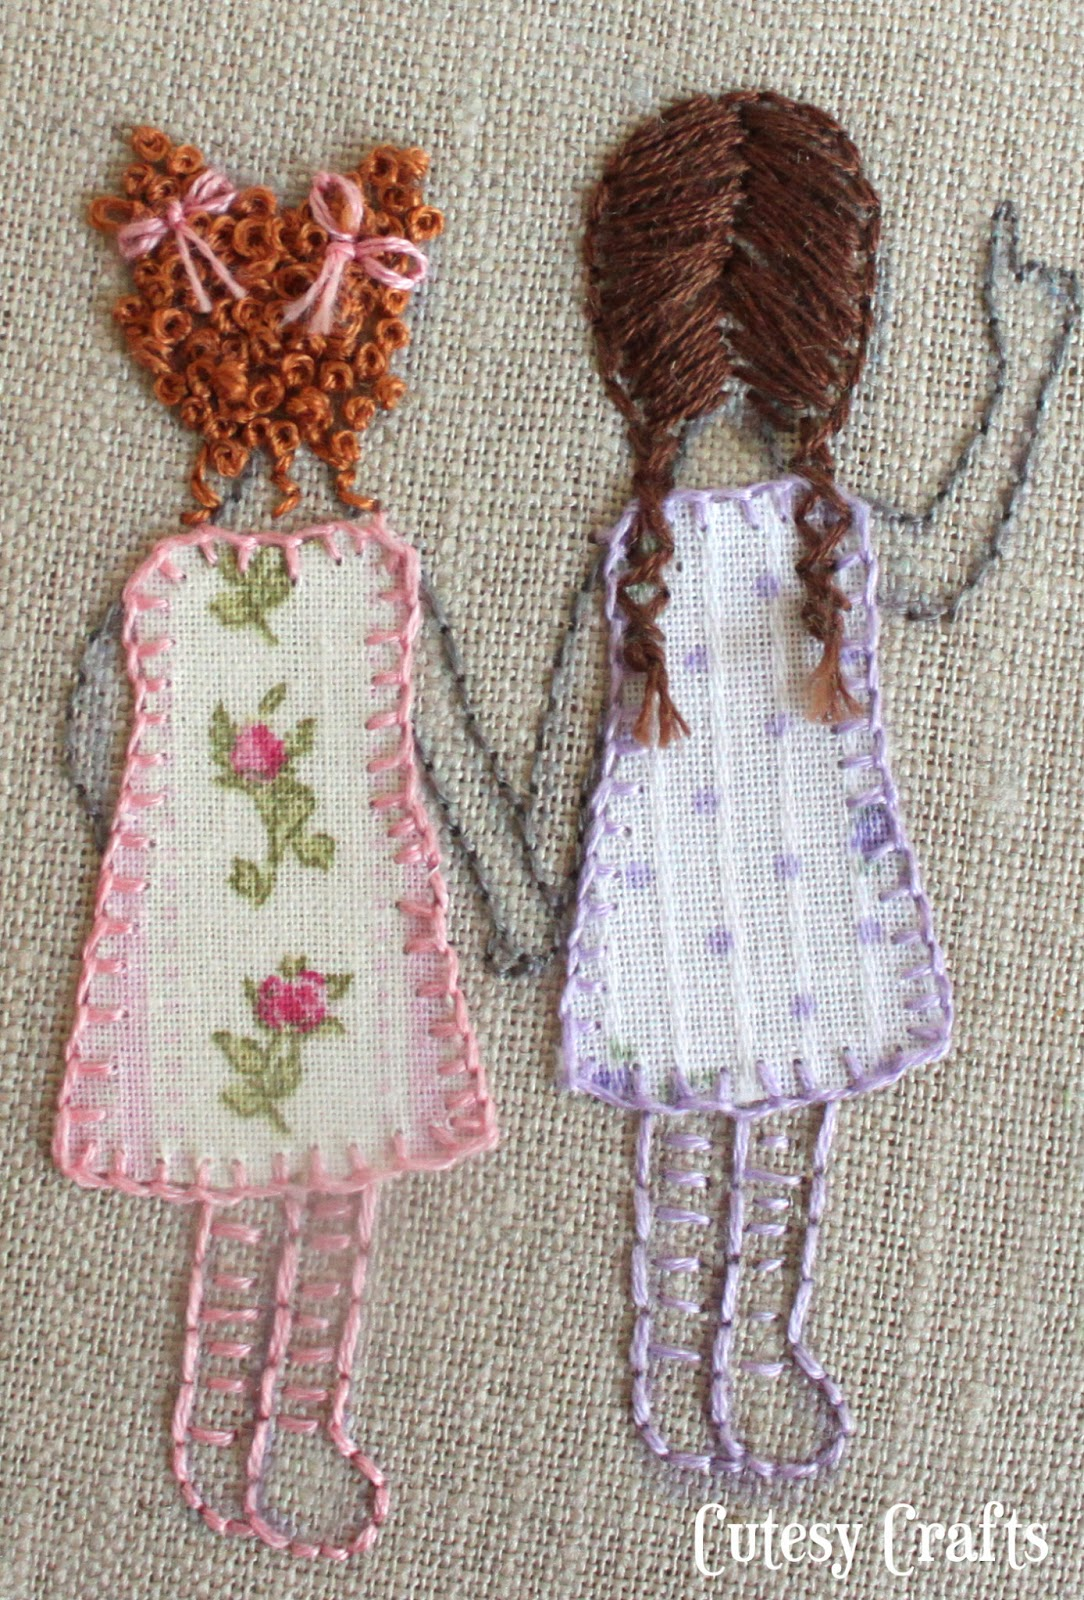 Embroidery hoop patterns cutesy crafts